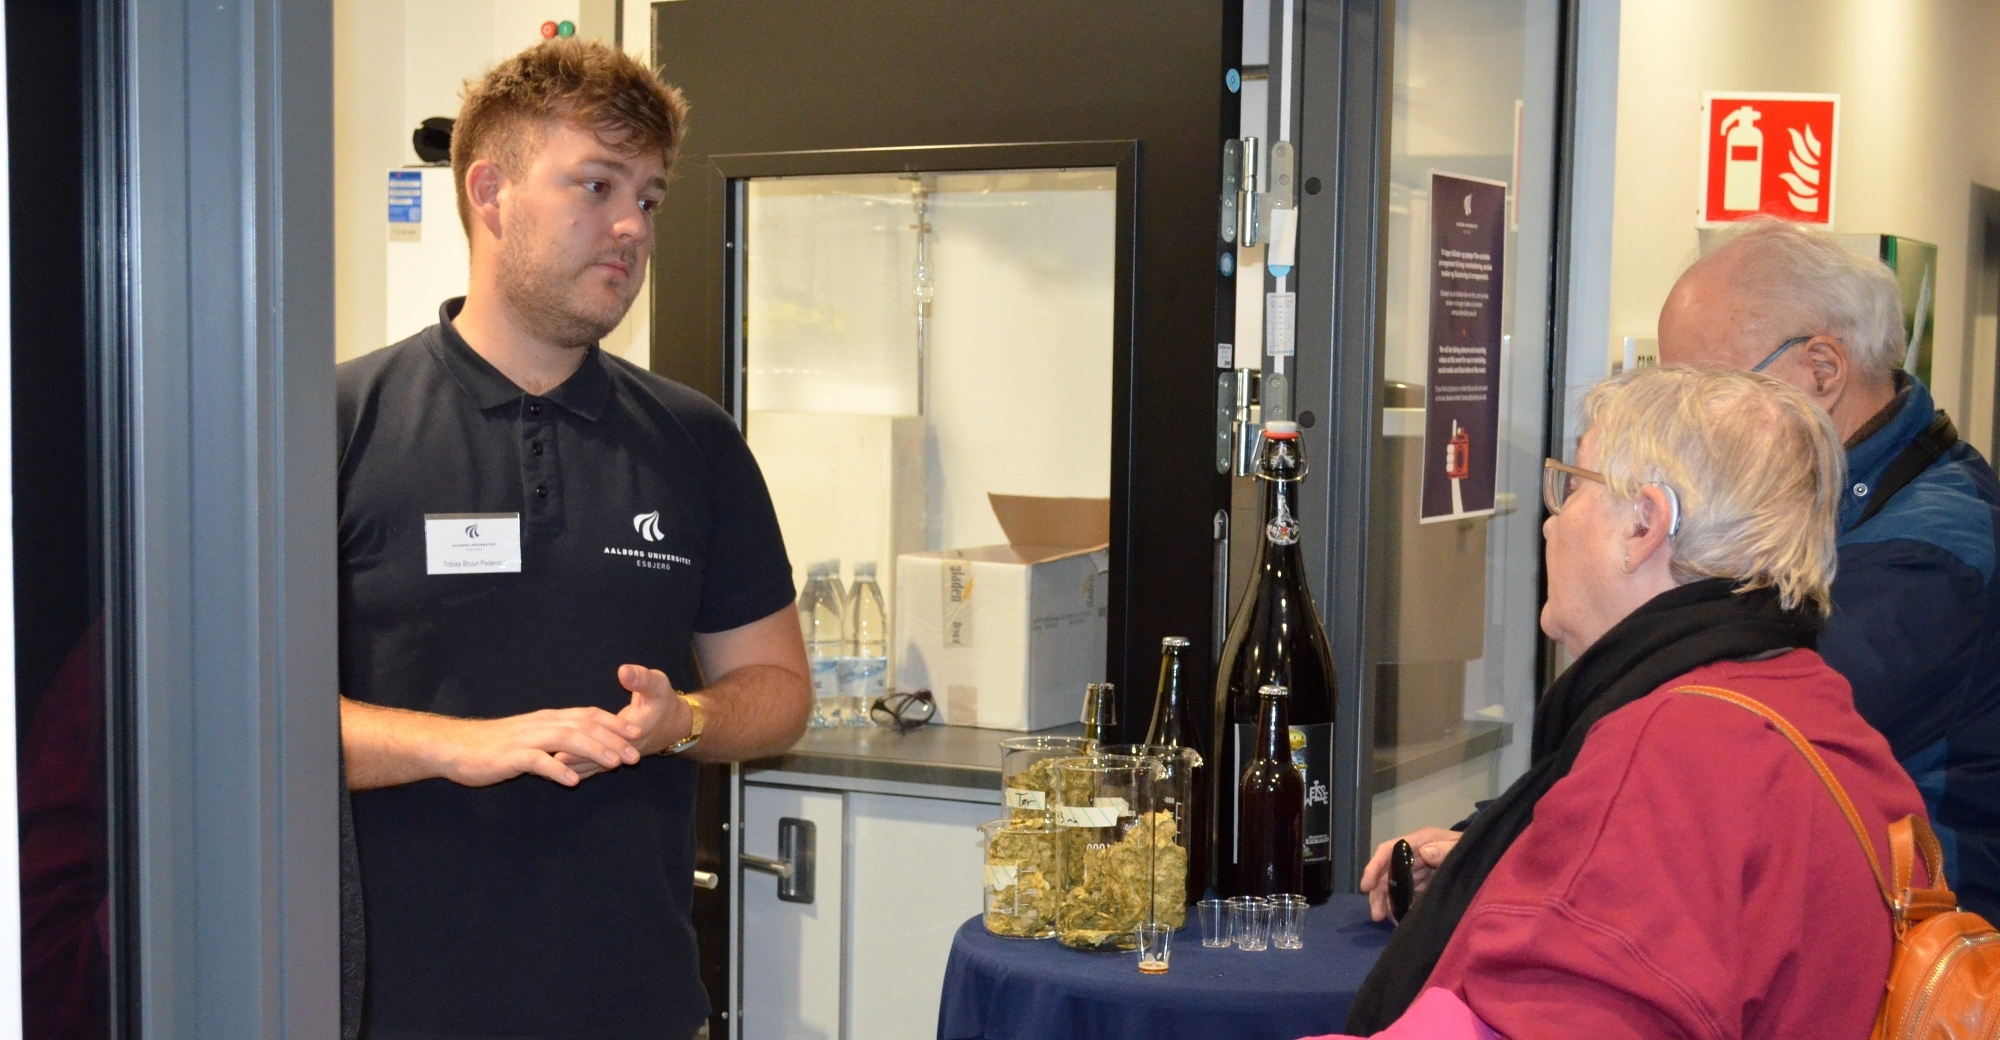 Esbjerg campus's own brewery where chemistry students brewed 20 litres of beer throughout the Open Day event